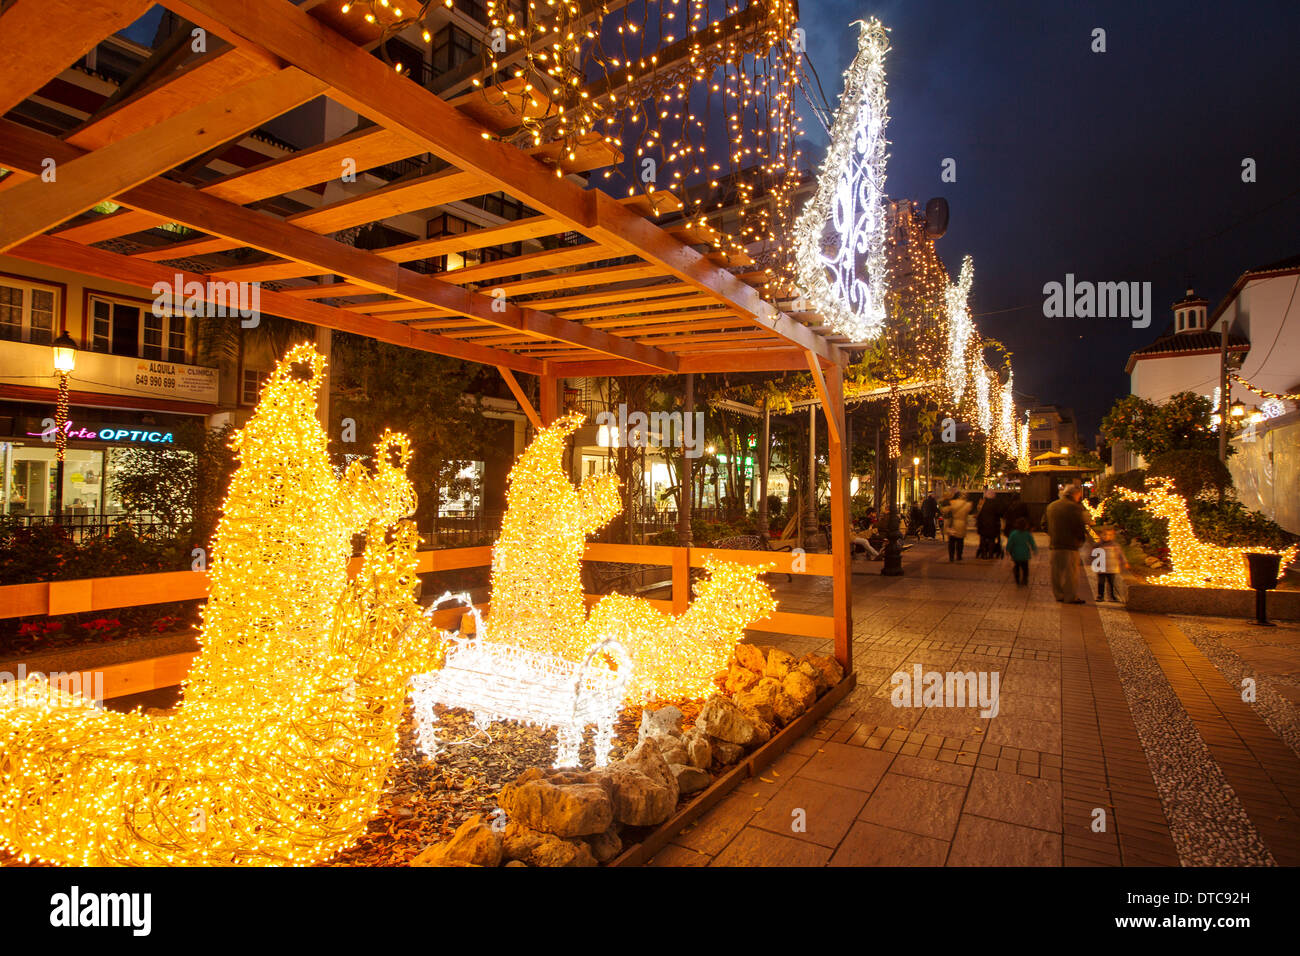 Lights and Christmas decoration Fuengirola Malaga Costa del Sol Andalusia Spain luces de navidad andalucia españa - Stock Image